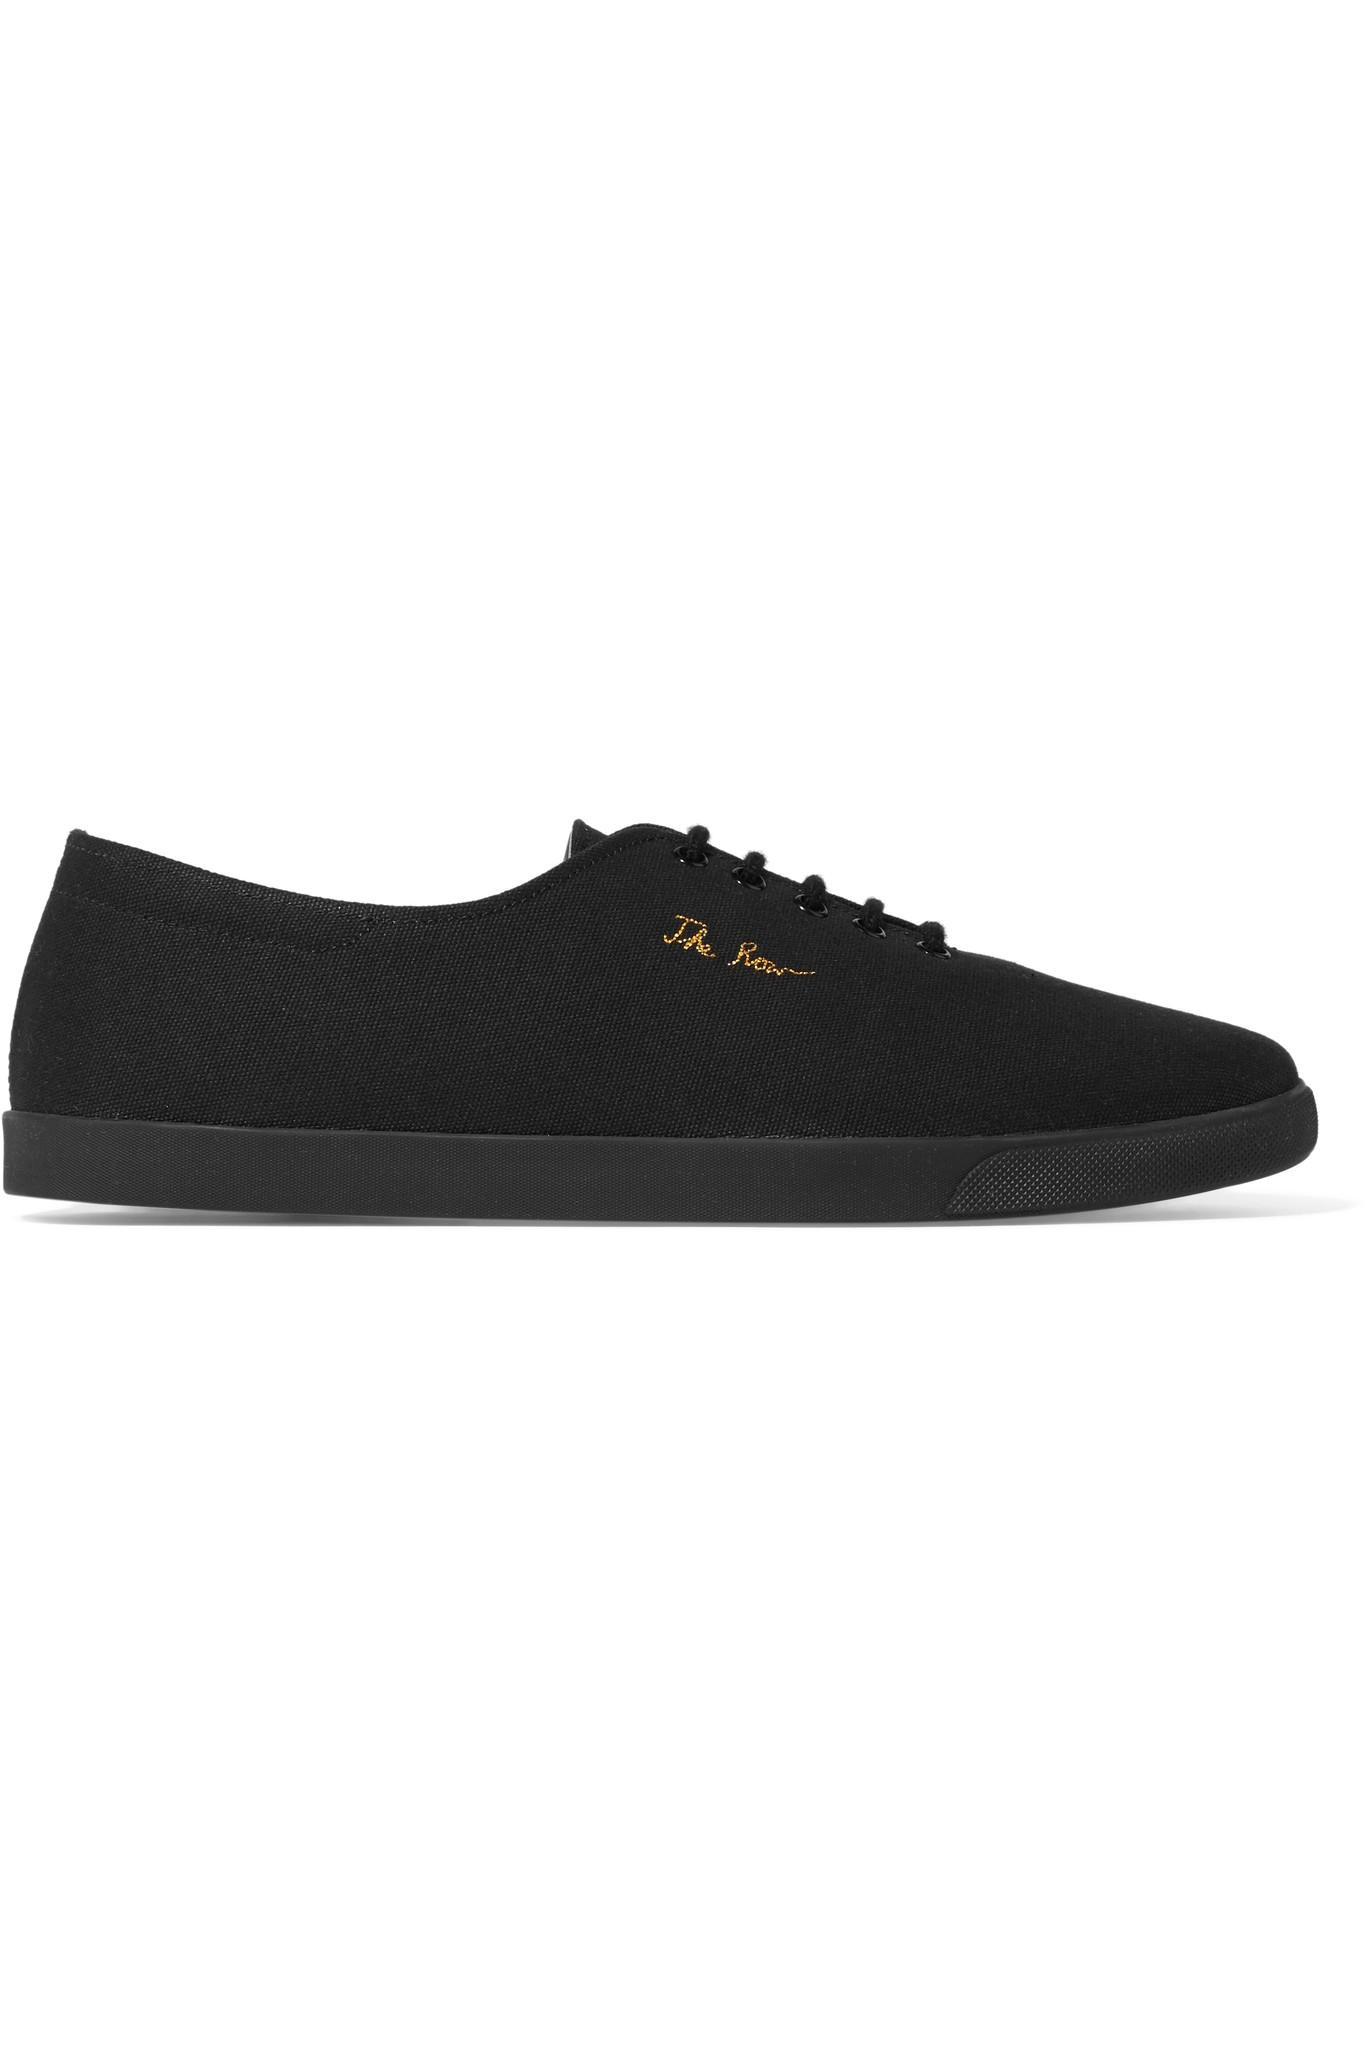 The Row. Women's Black Dean Embroidered Canvas Sneakers